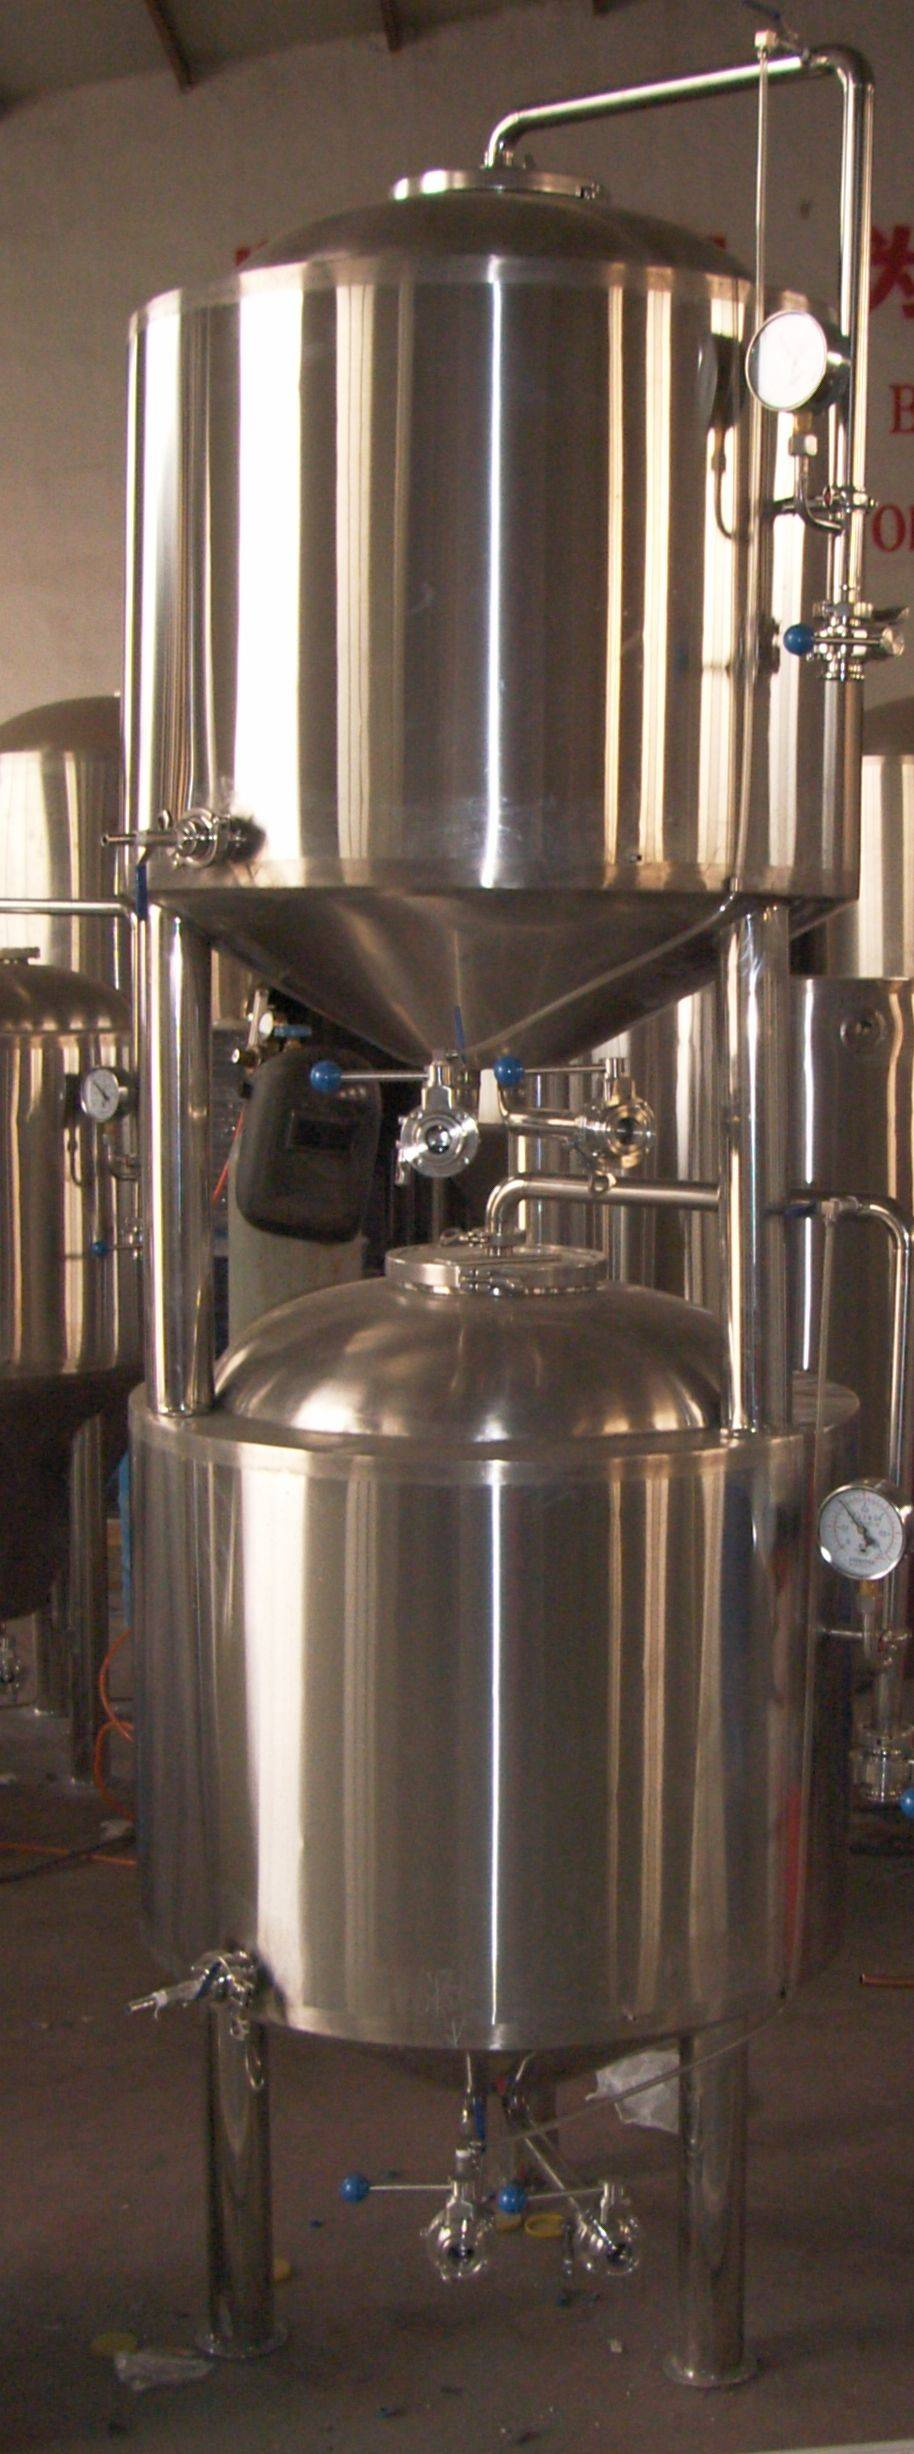 Bar and brewpubs used beer production equipment